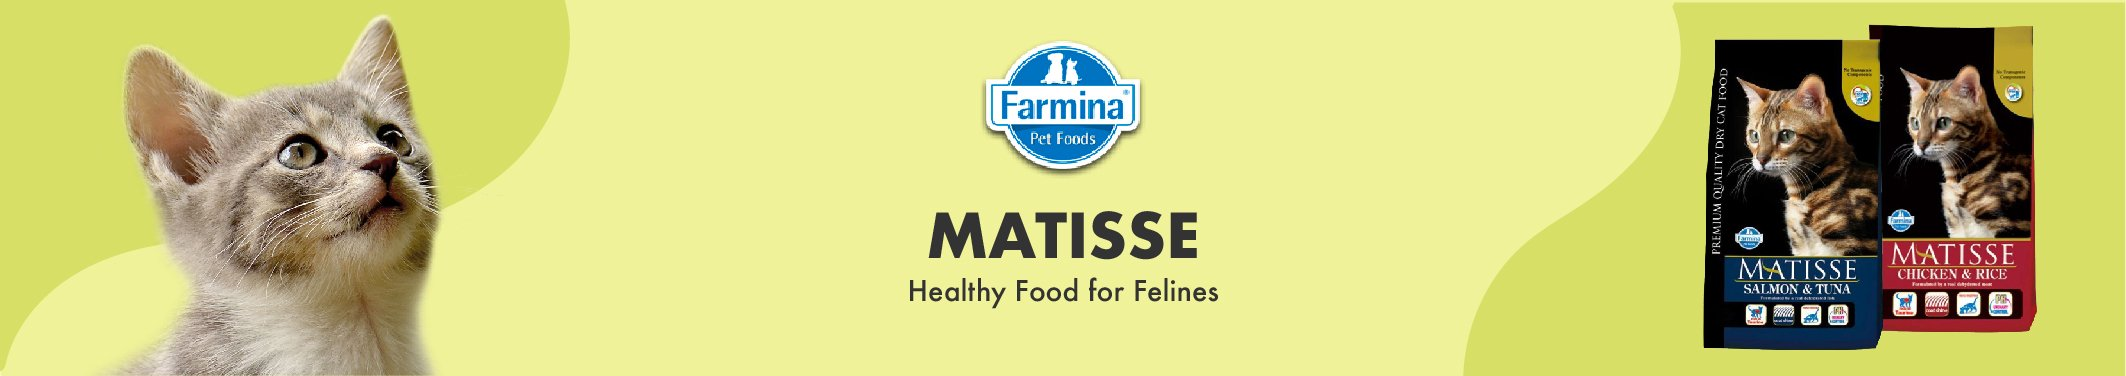 Matisse Healthy Food for Cats